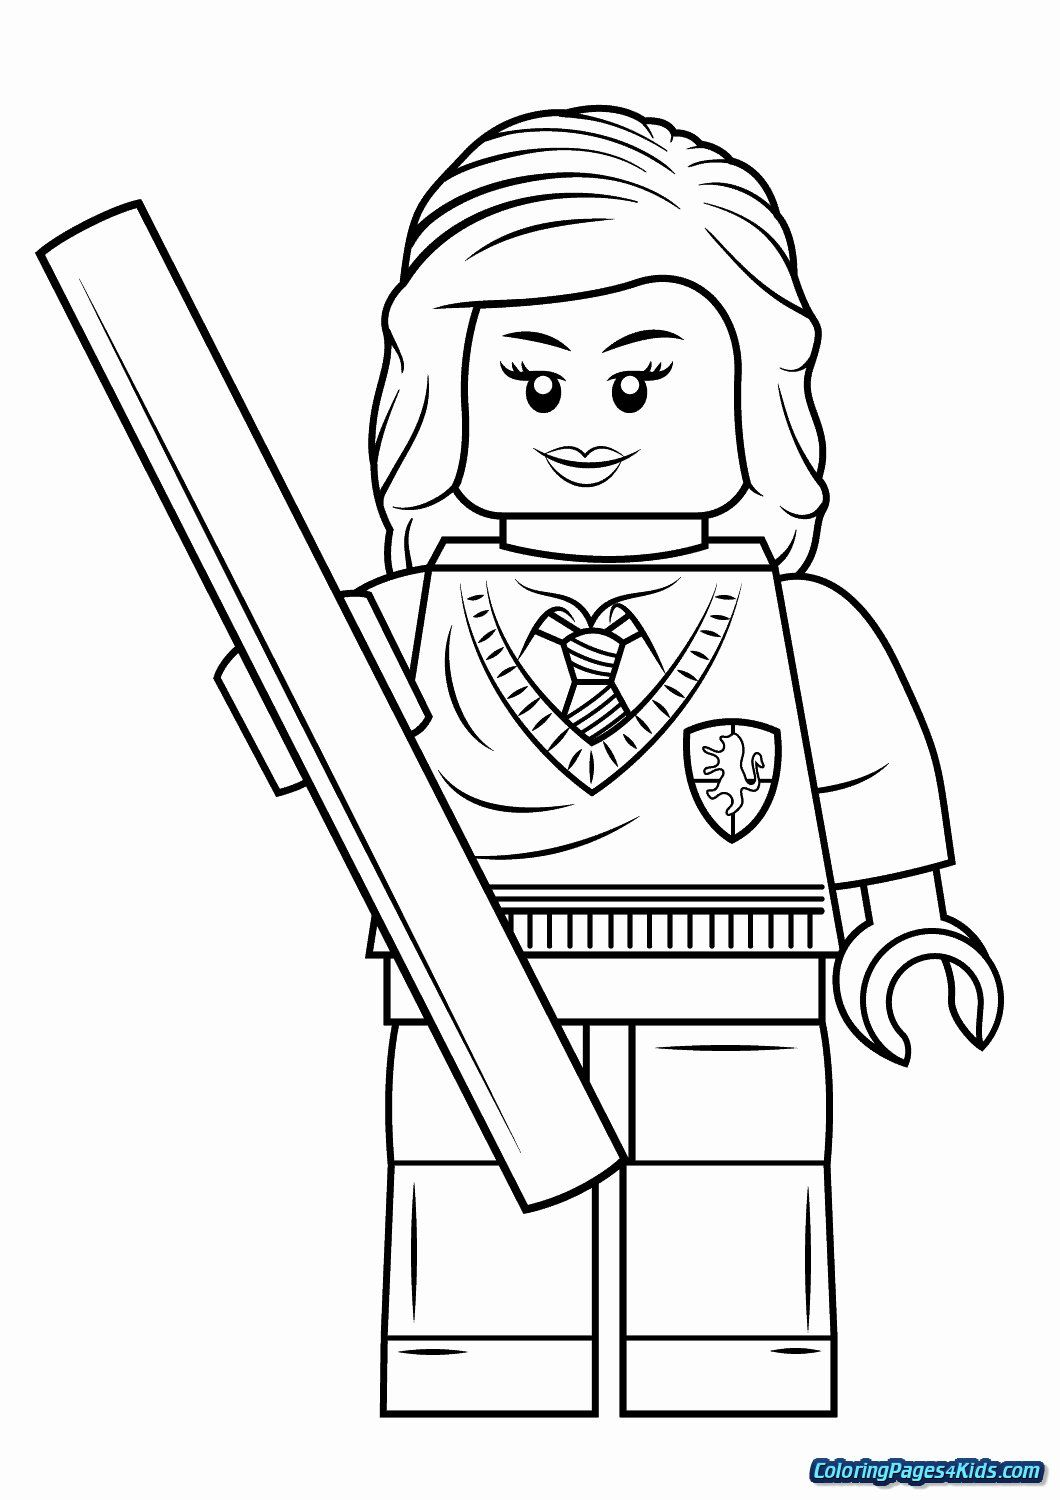 Coloring Pages Animals Goat Beautiful Coloring Pages Chance The Rapper Coloring Book Tar In 2020 Harry Potter Coloring Pages Lego Coloring Pages Harry Potter Colors